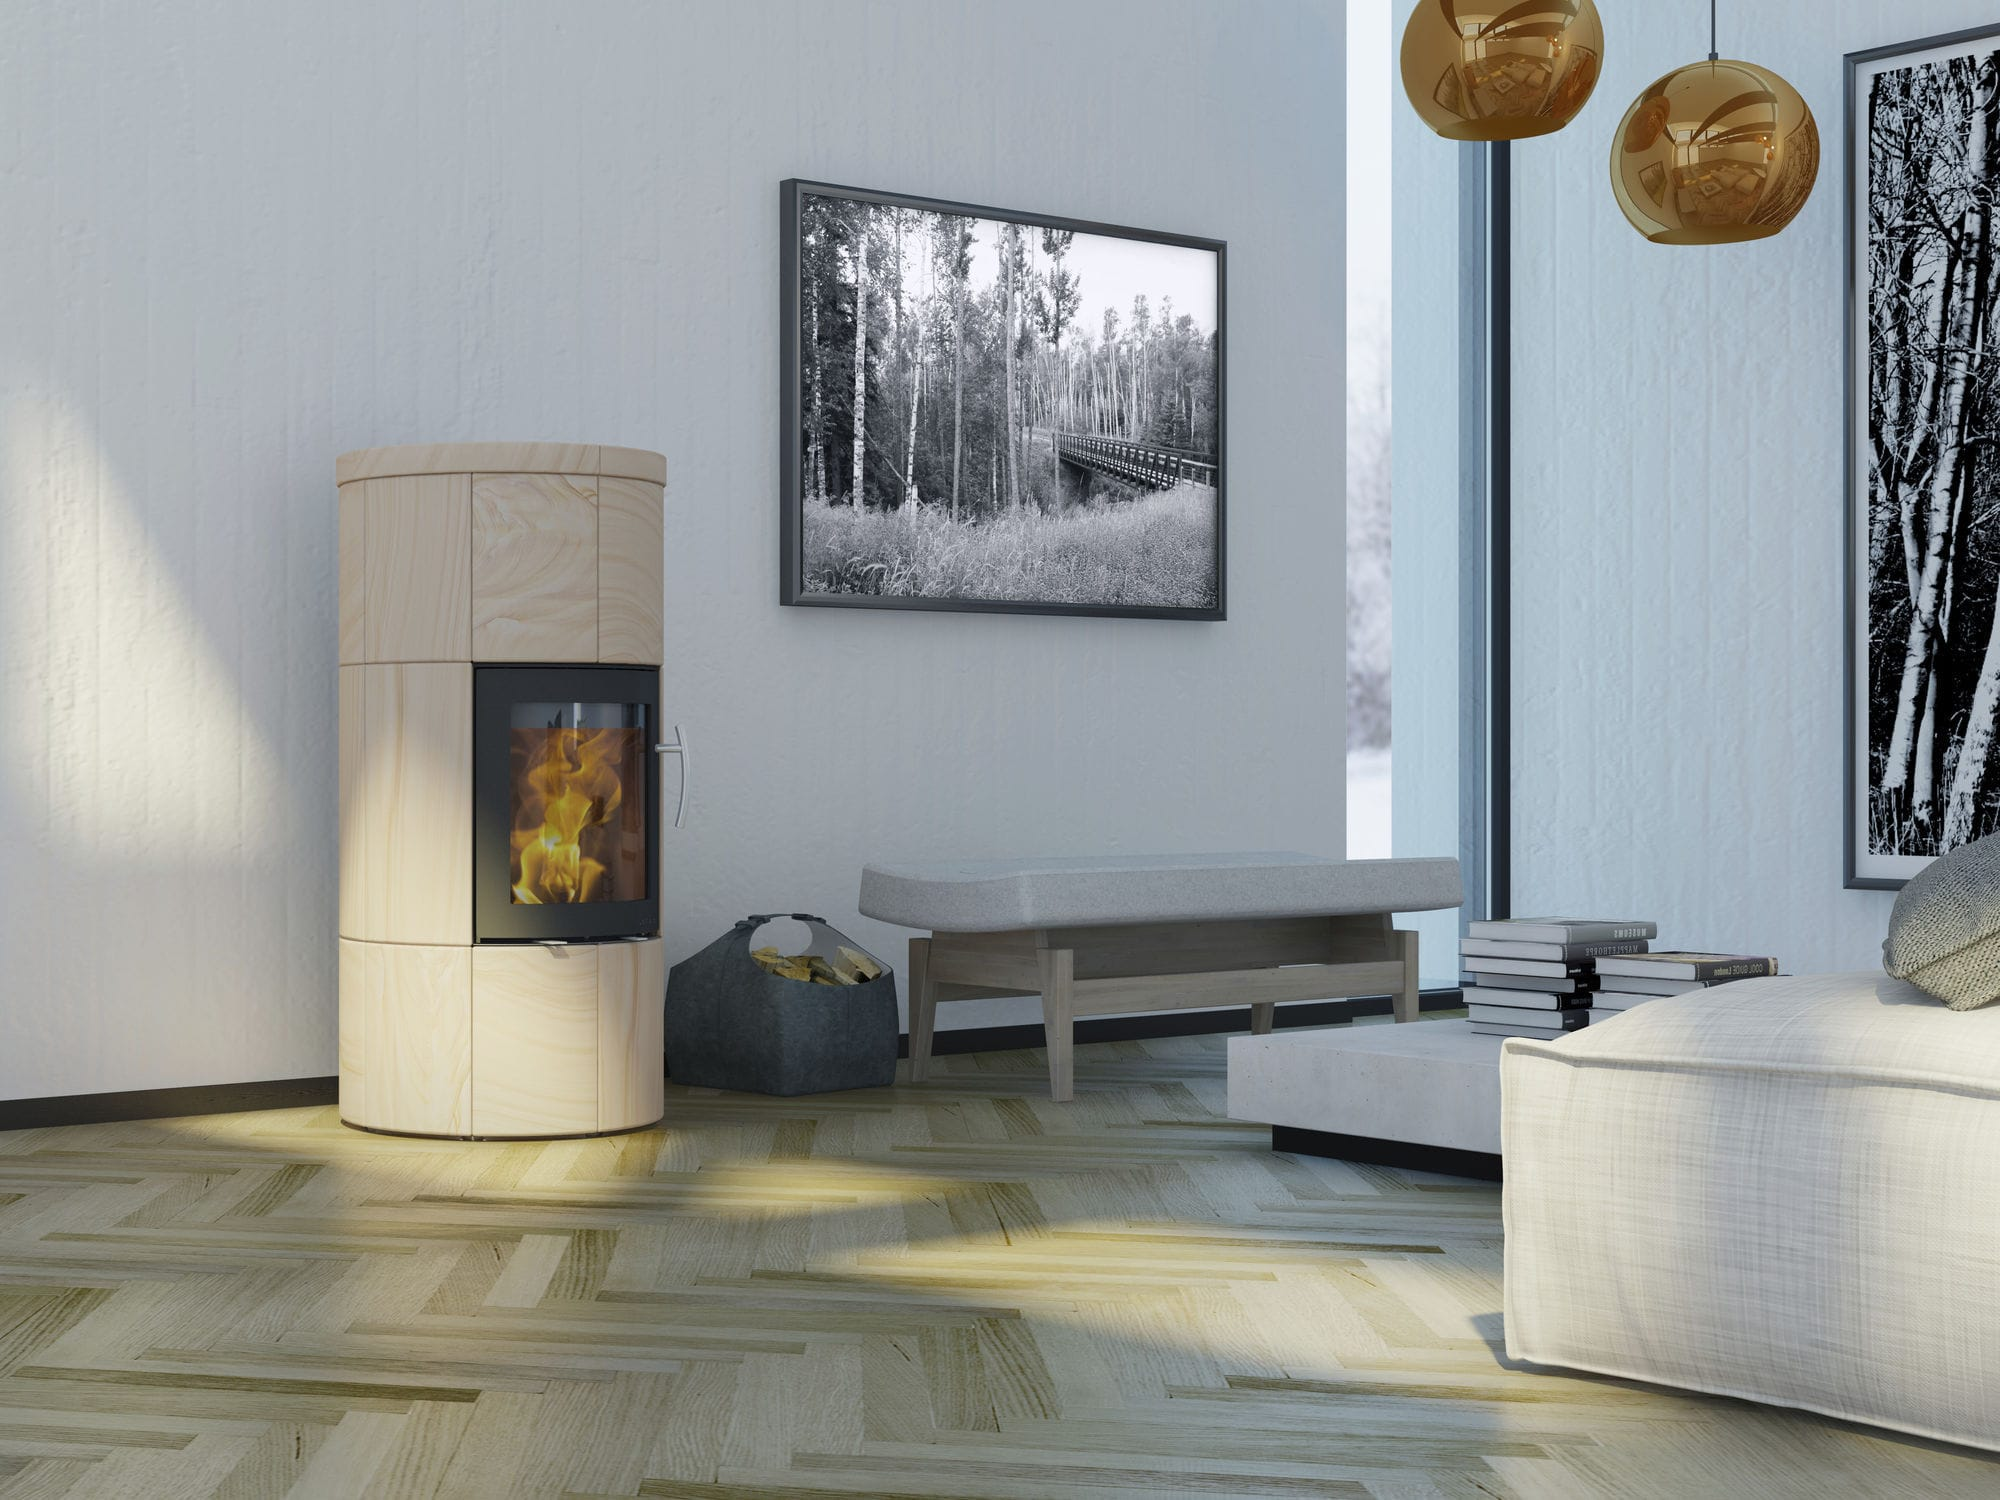 Kaminofen Lotus M1 Holz Kaminofen Modern Stein M1 Lotus Heating Systems A S